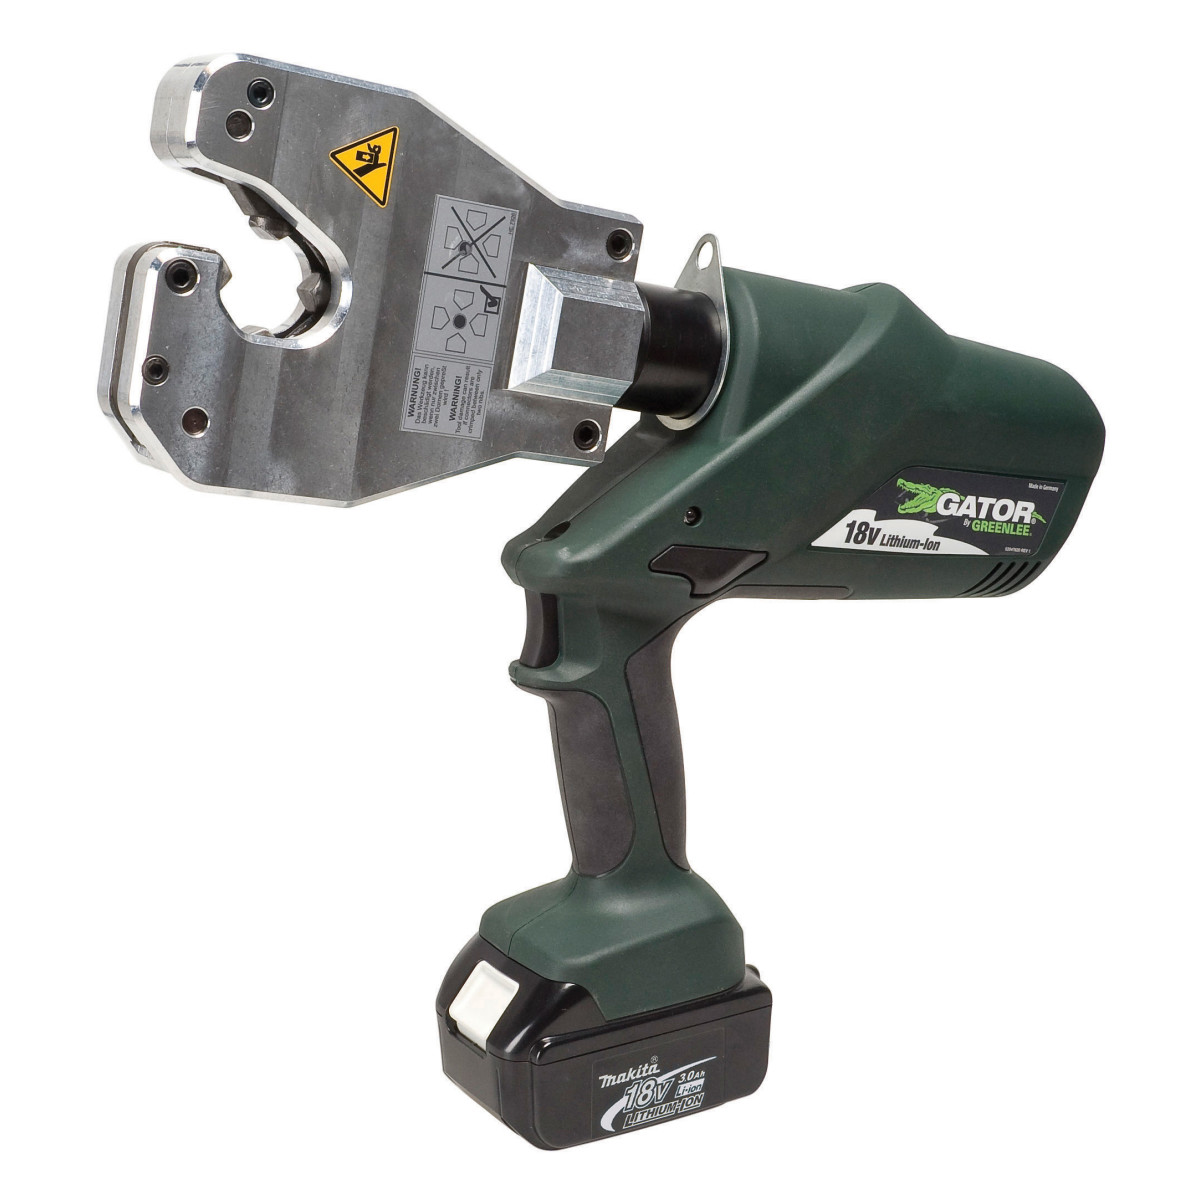 GRTEK06ATCL120 QUAD-POINT CRIMPING TOOL W/120 VAC ADAPTER, GREENLEE